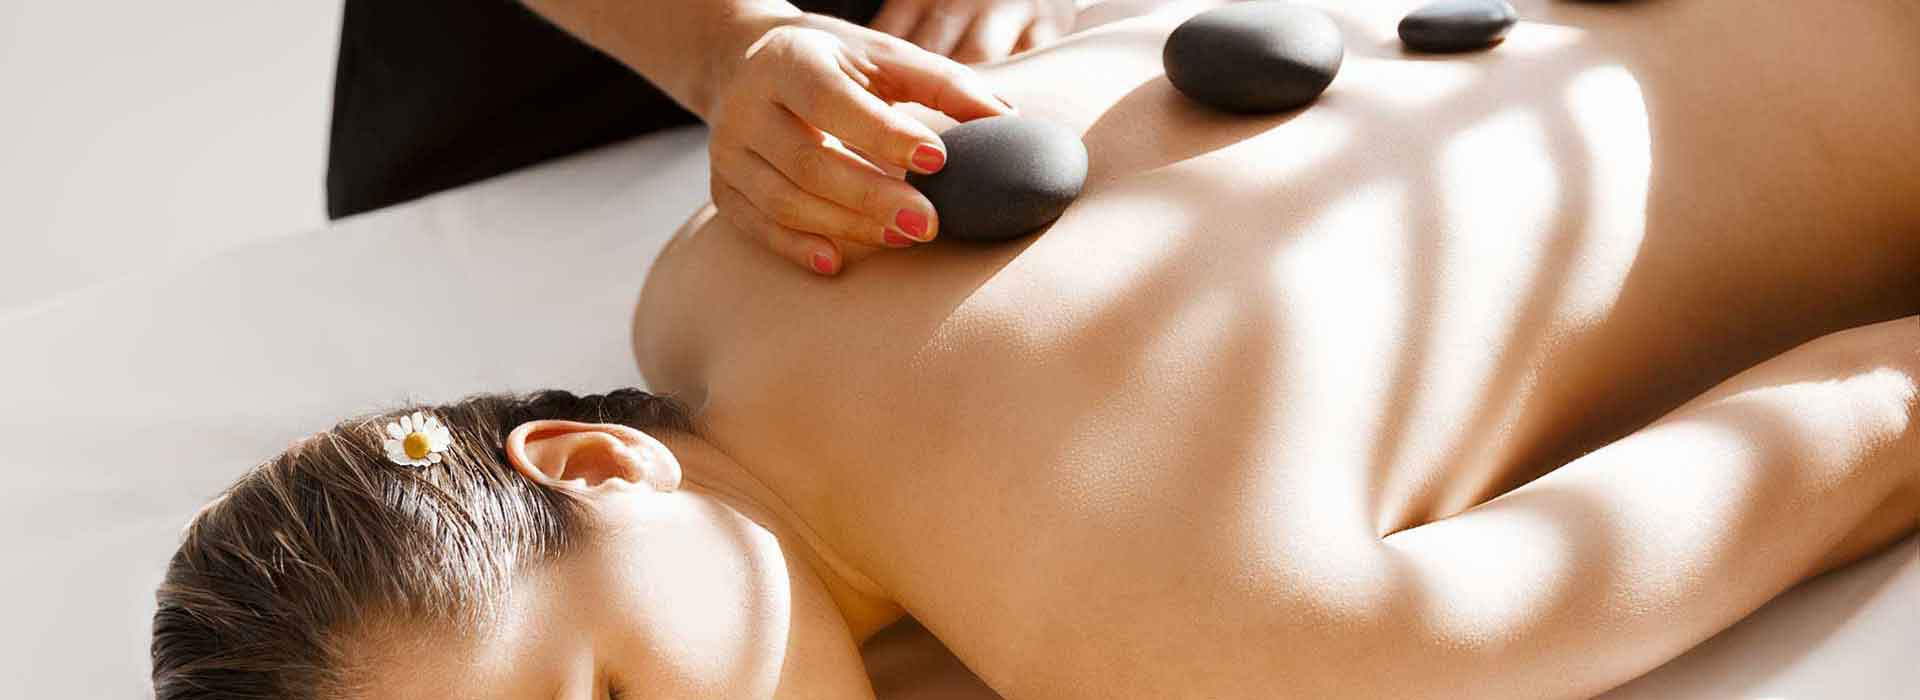 Hotel Konstanz SPA Hot Stone Massage